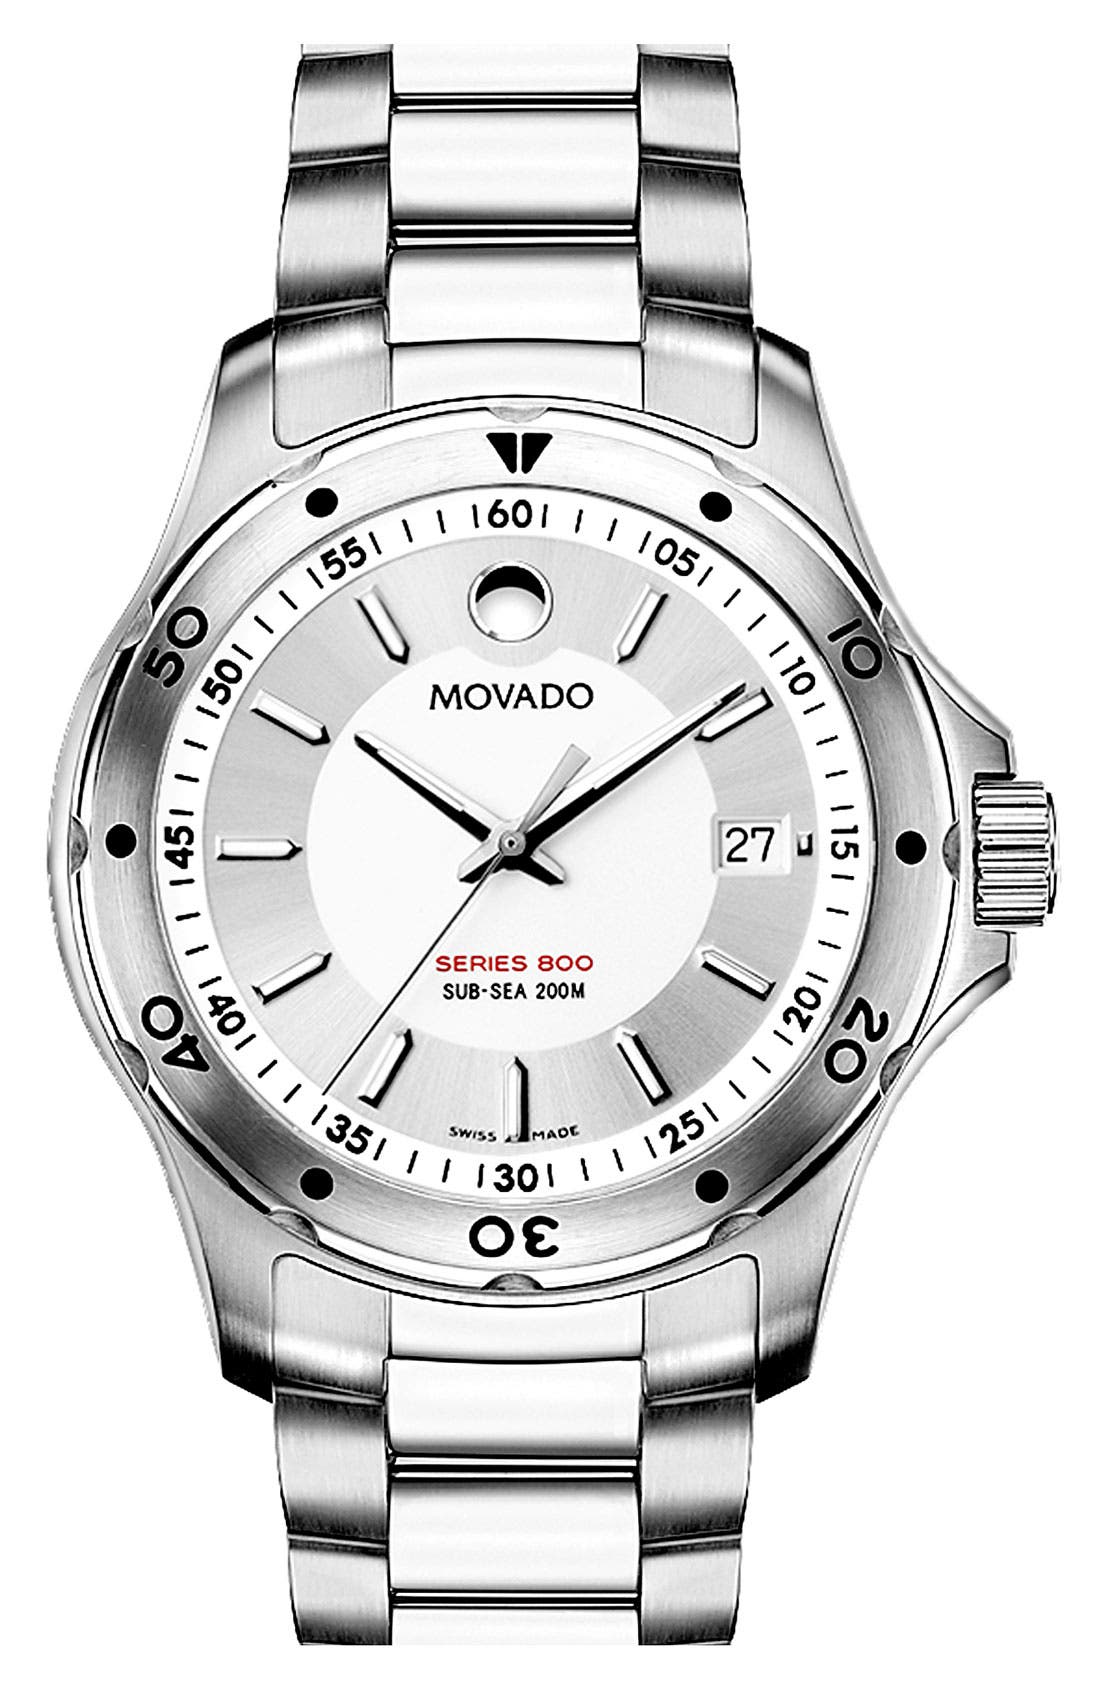 Alternate Image 1 Selected - Movado 'Series 800' Men's Stainless Steel Watch